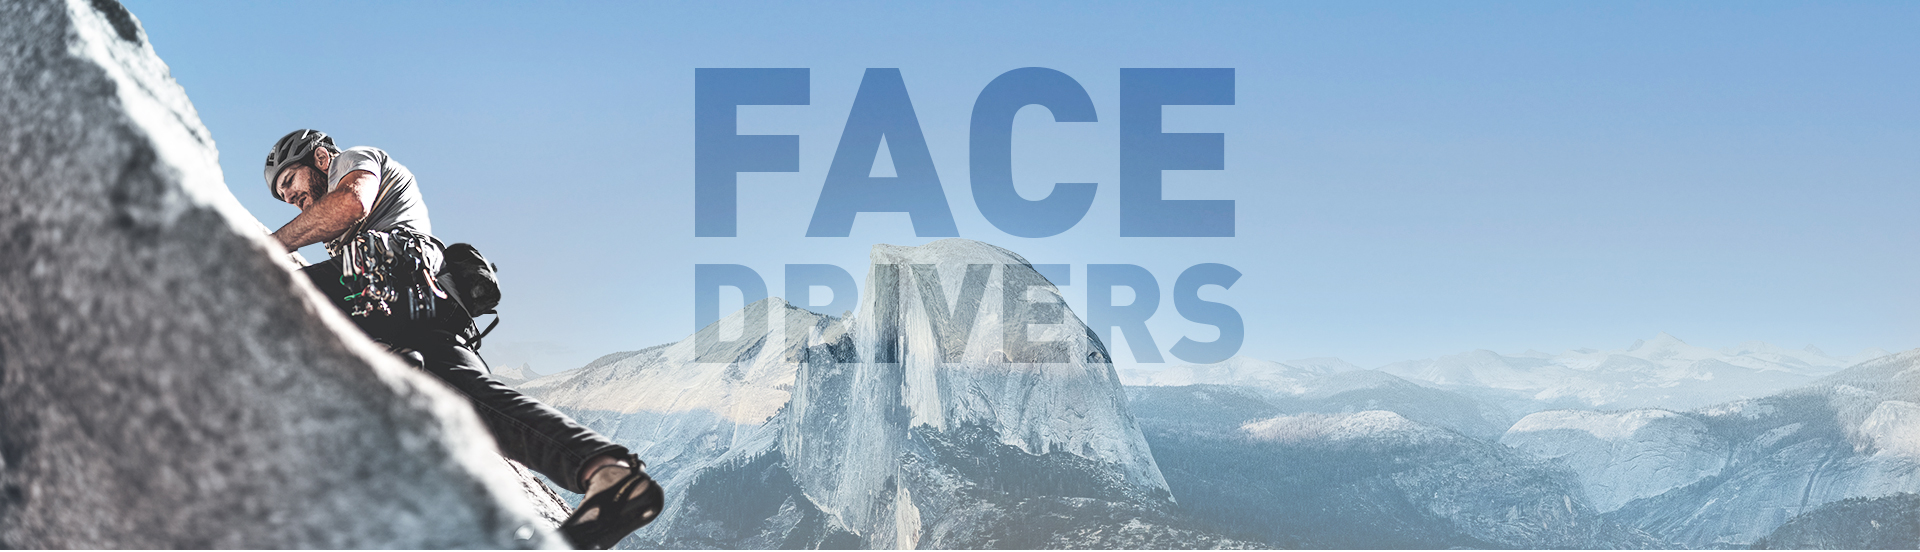 Face Drivers